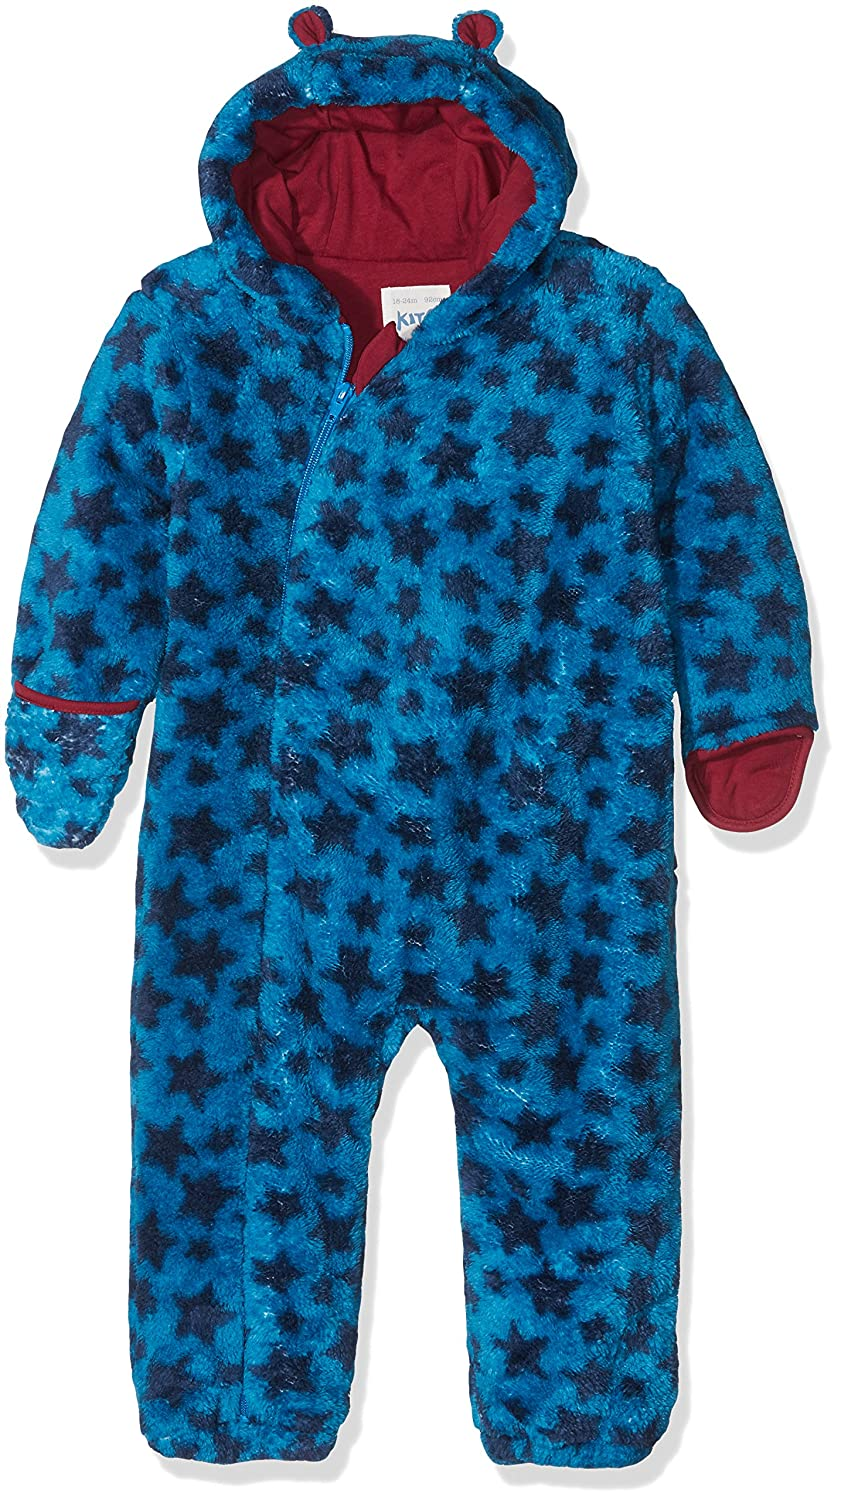 Kite Baby Boys' Star Fleece All-in-one Snowsuit BB953